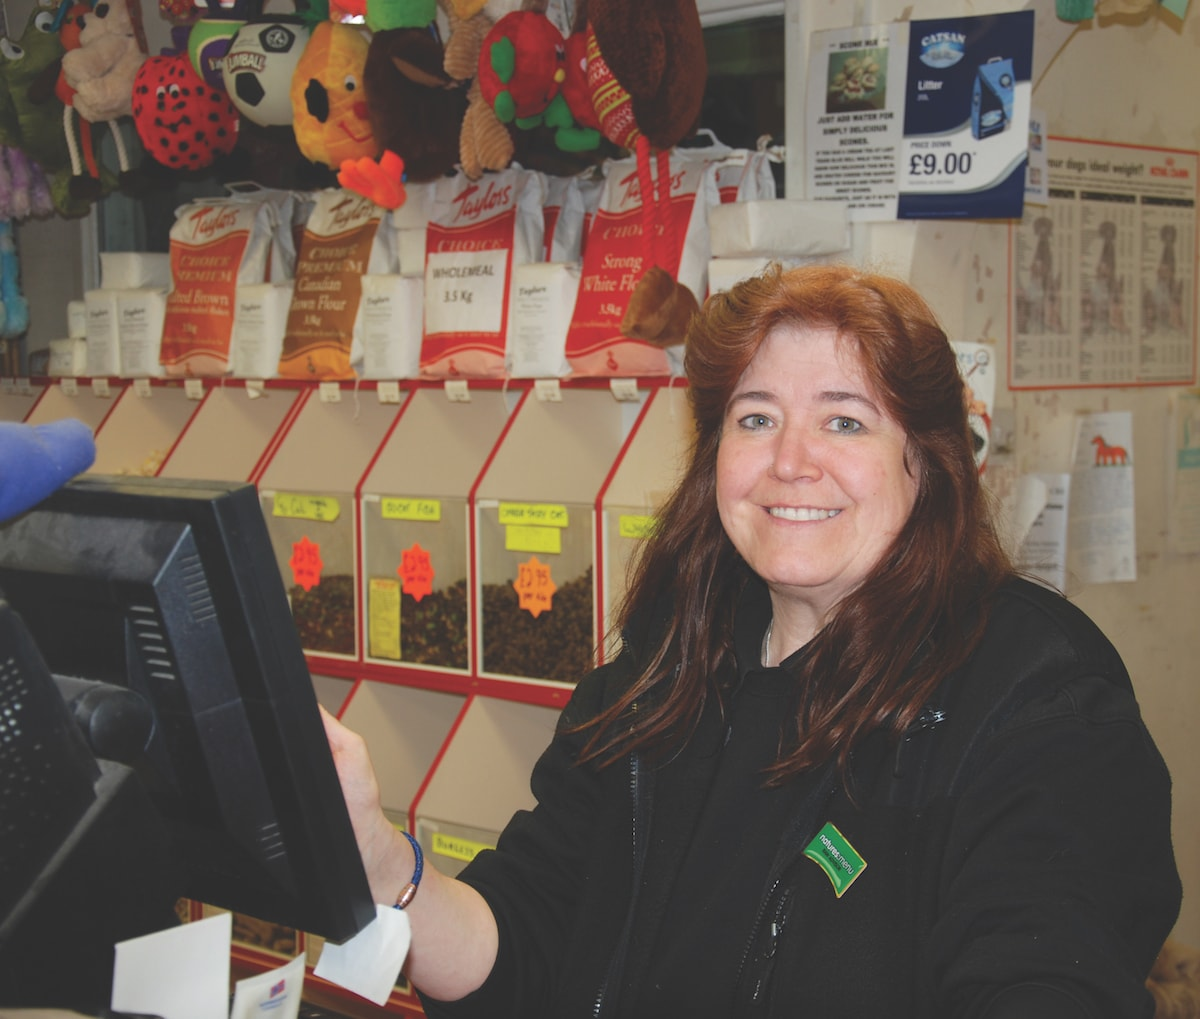 Angela works in retail at the Kirkby-in-Ashfield Branch